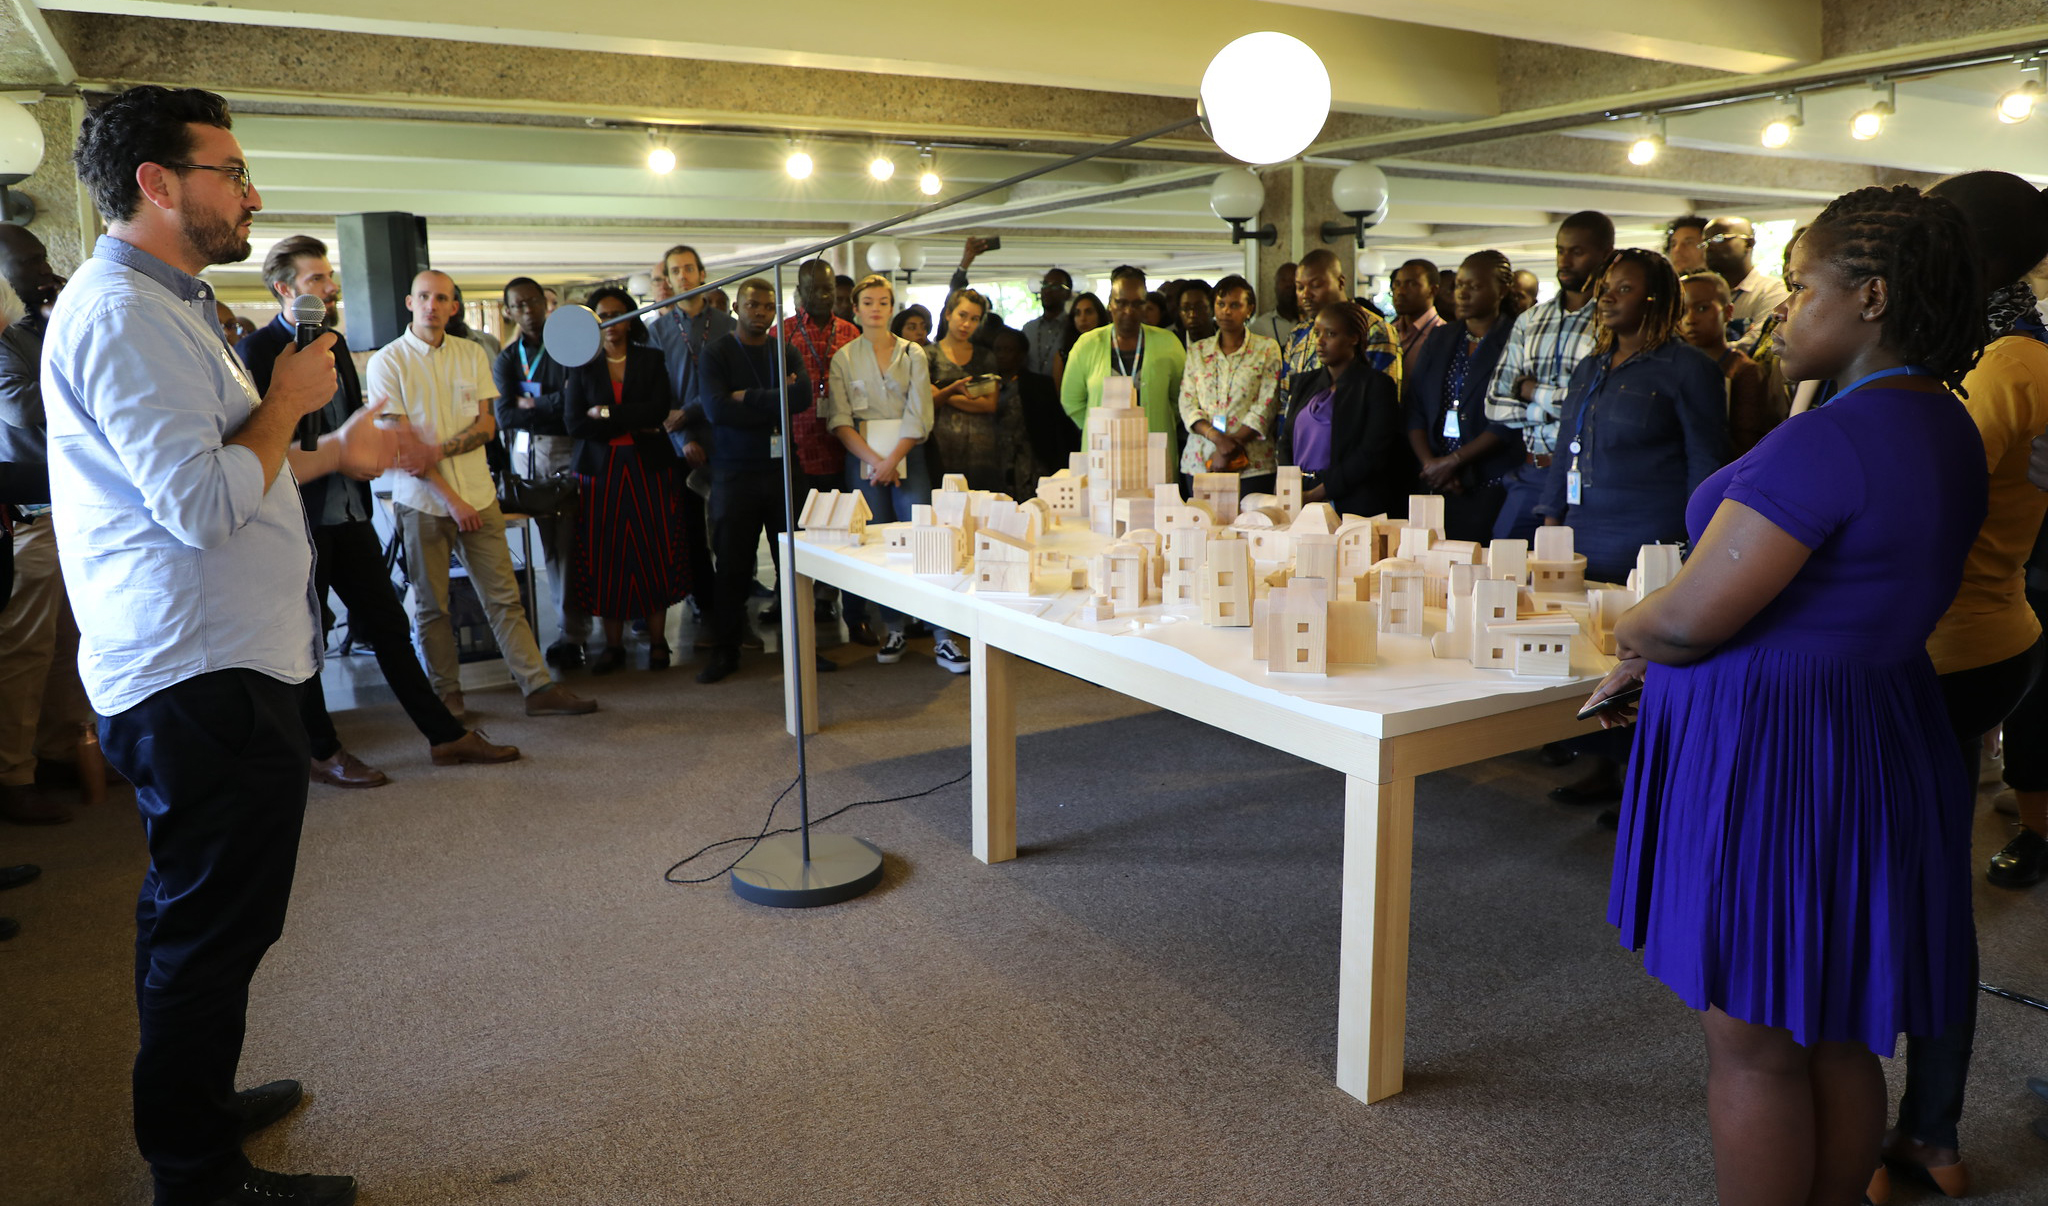 Solarville was presented at the UN offices in Nairobi